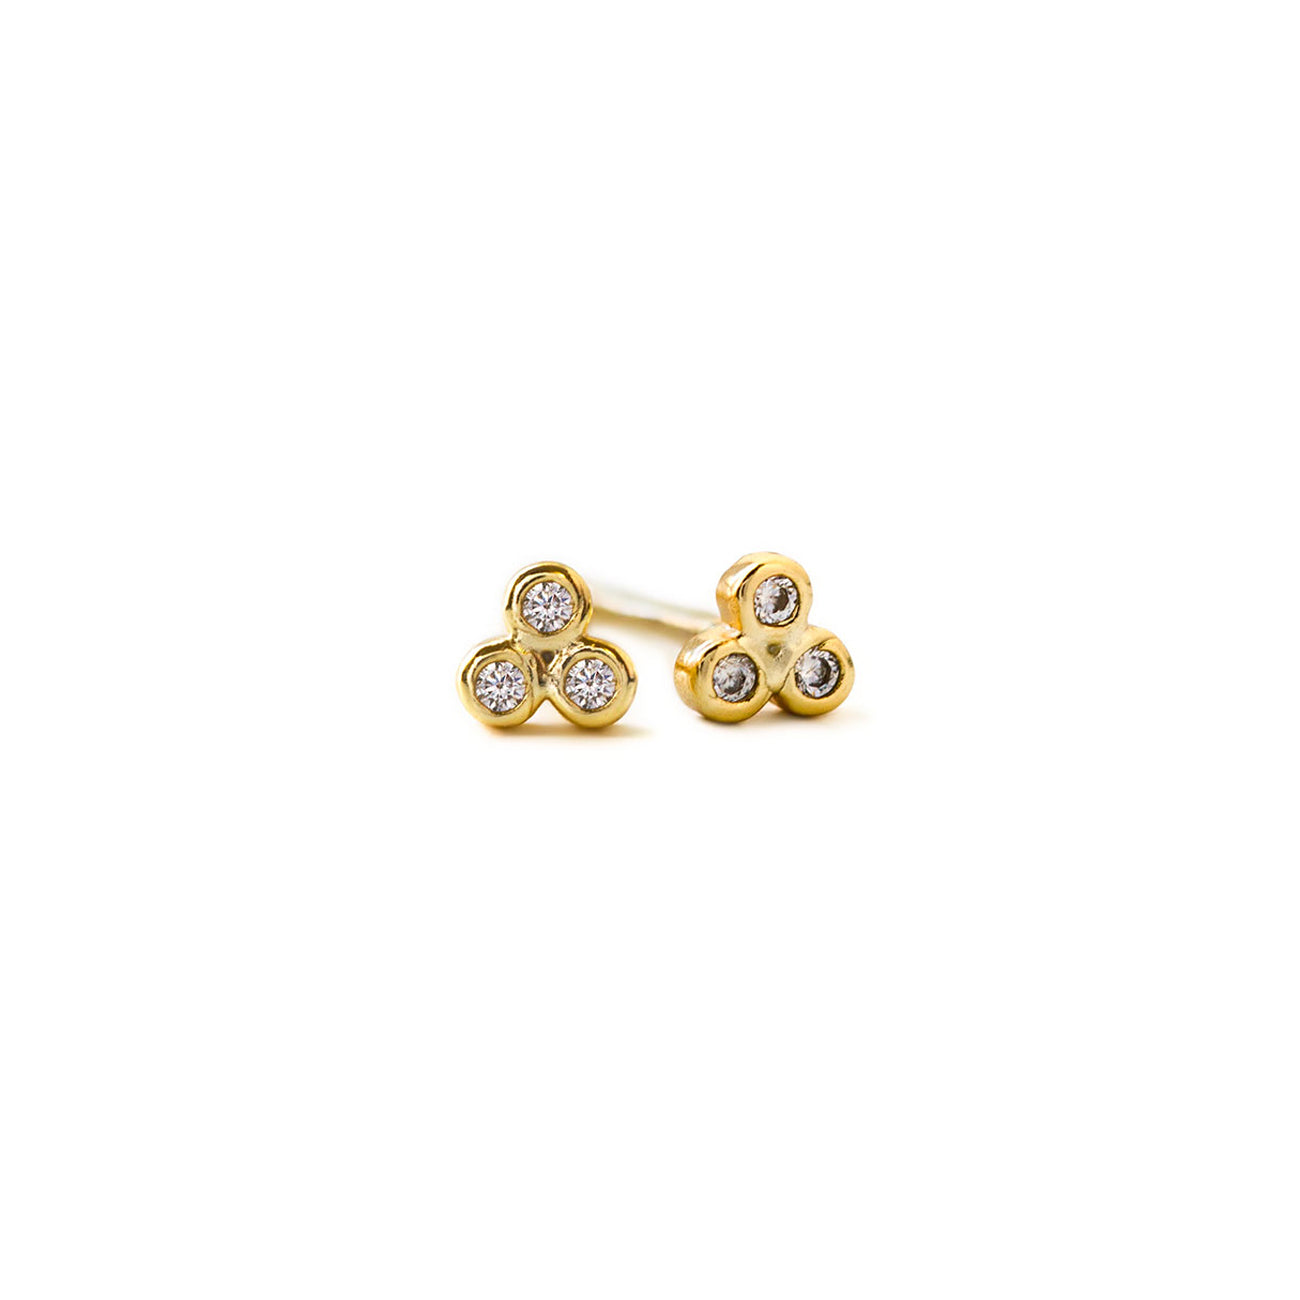 Tiny Gold Clover Stud Earrings